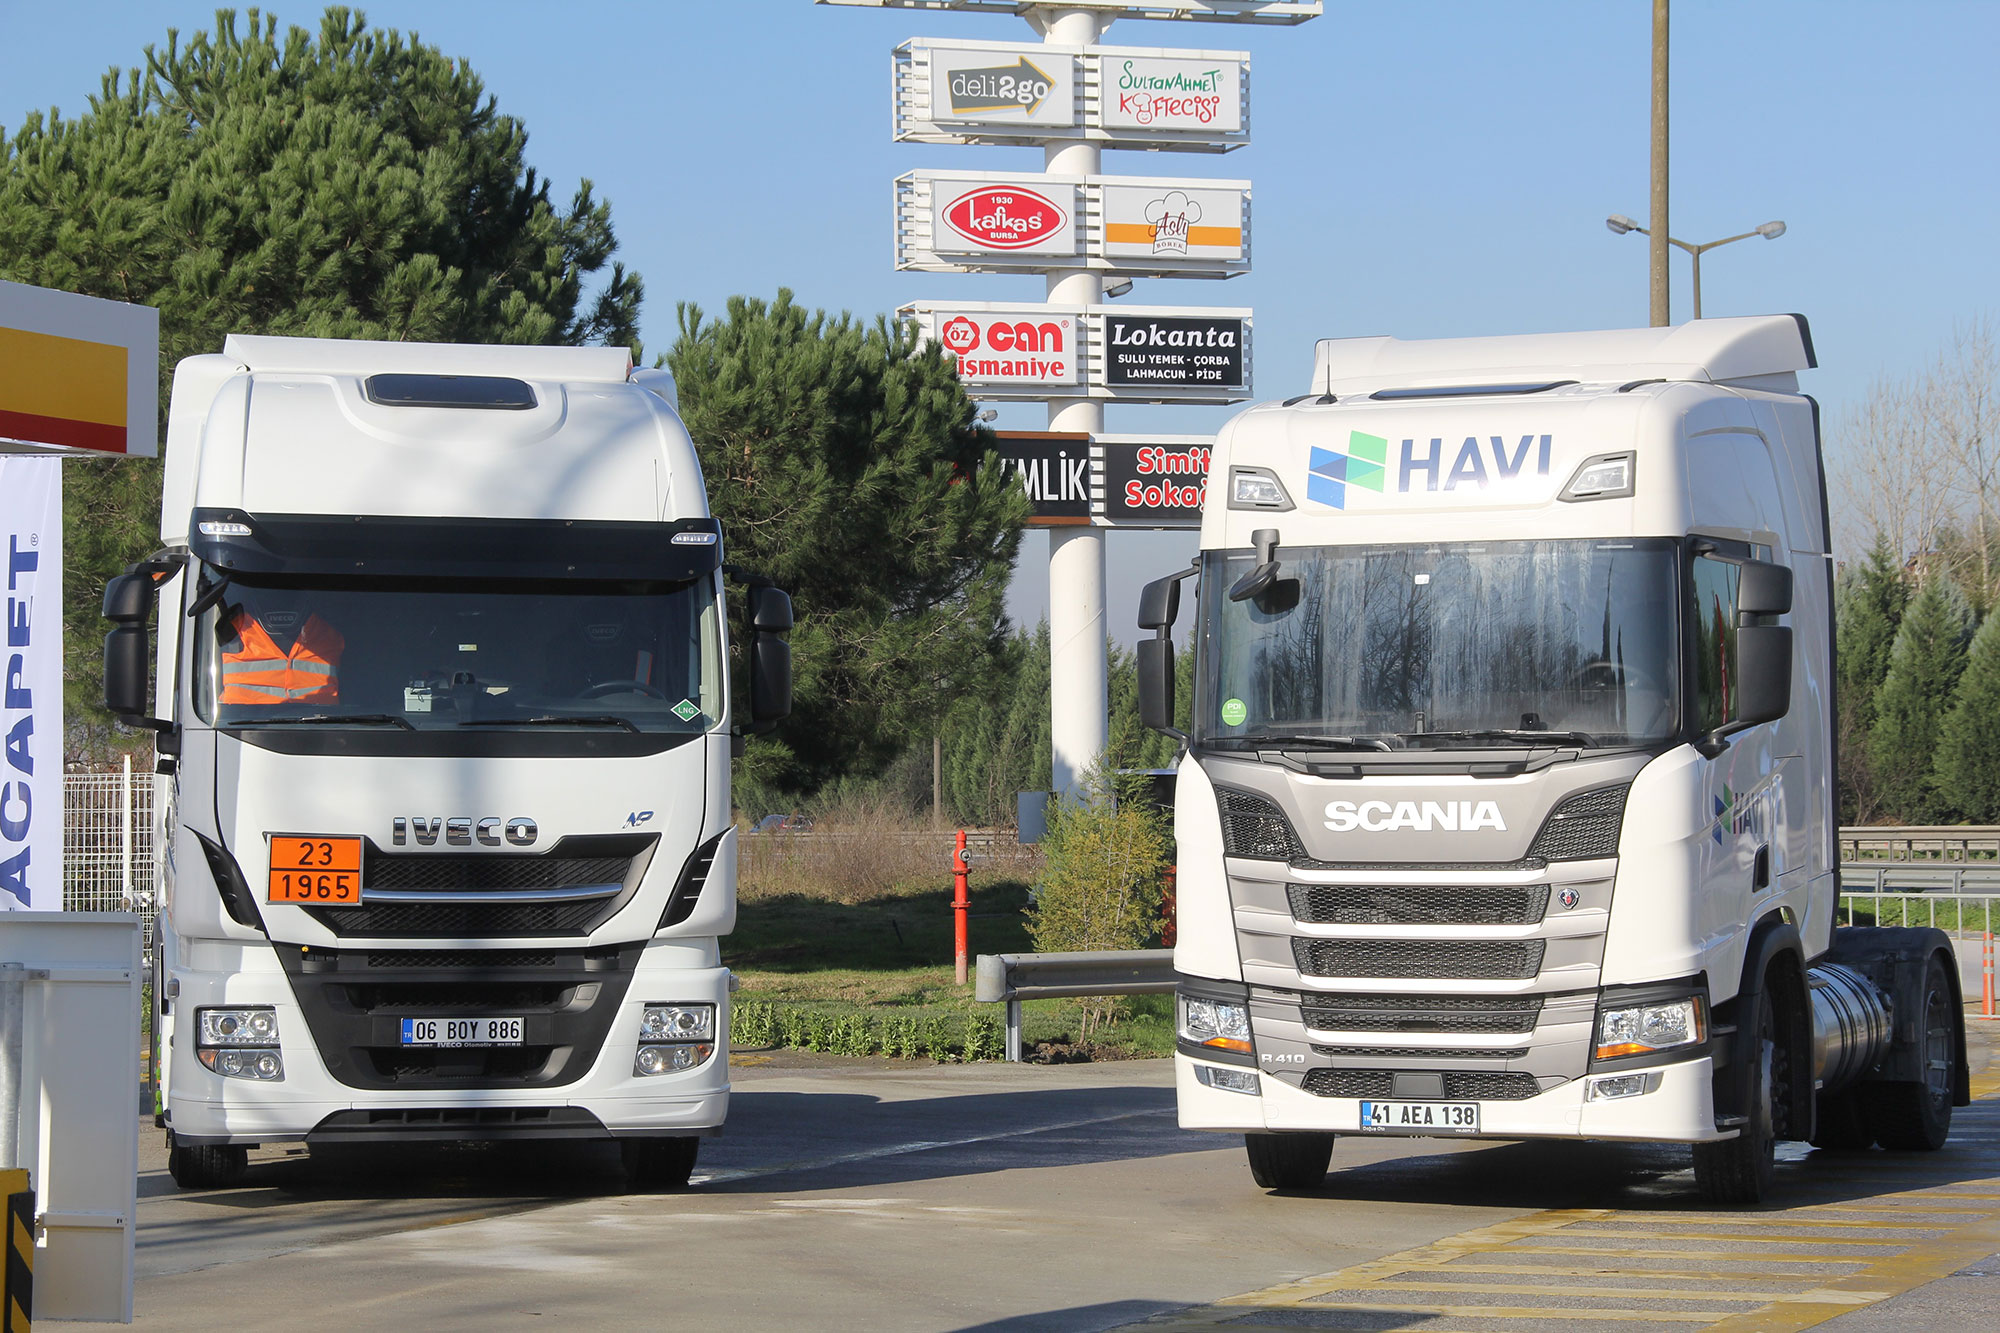 iveco-scania-lng.jpg